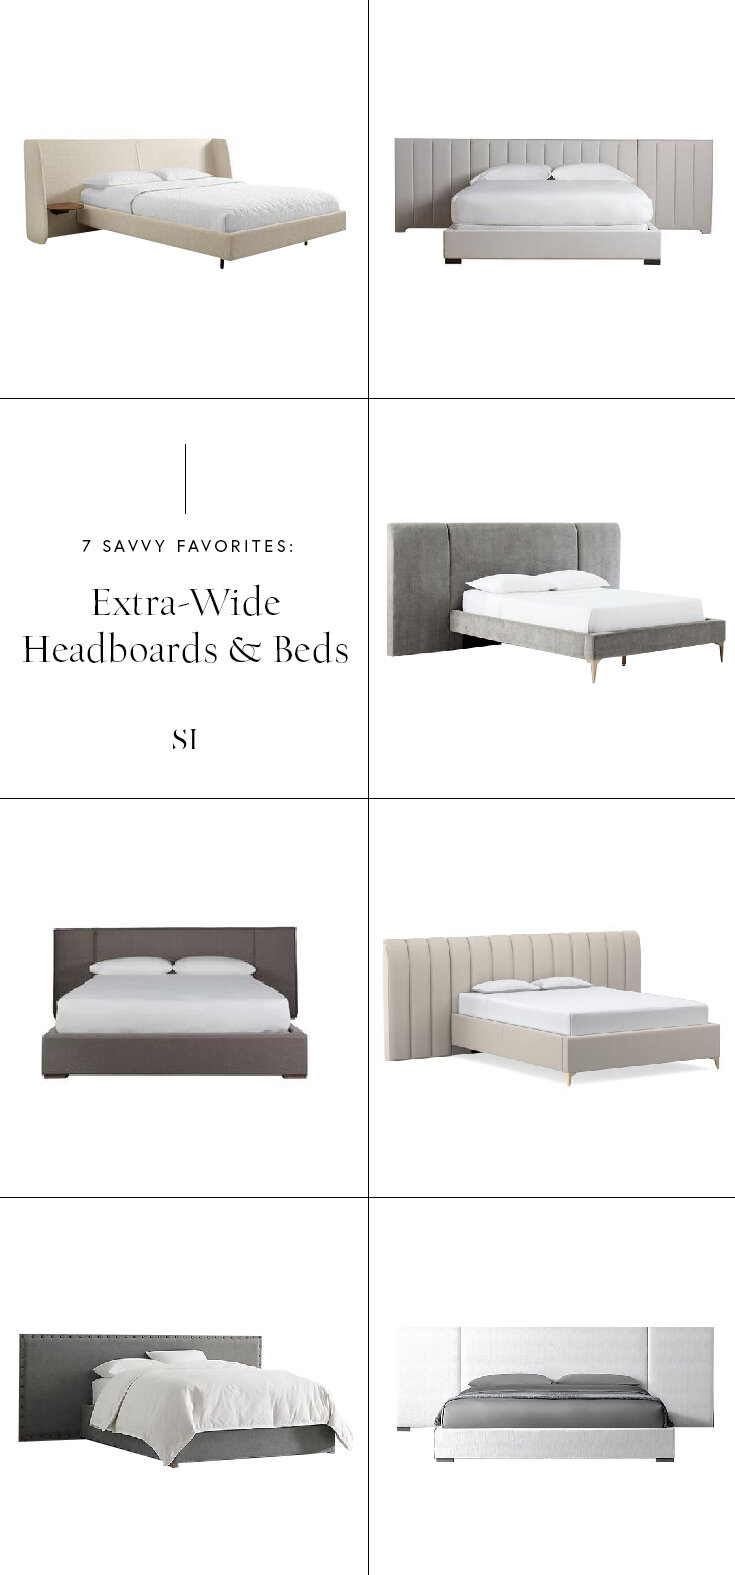 Extra-wide-and-extended-panel-headboards---interior-design-trend-and-best-roundup-by-the-savvy-heart.jpg